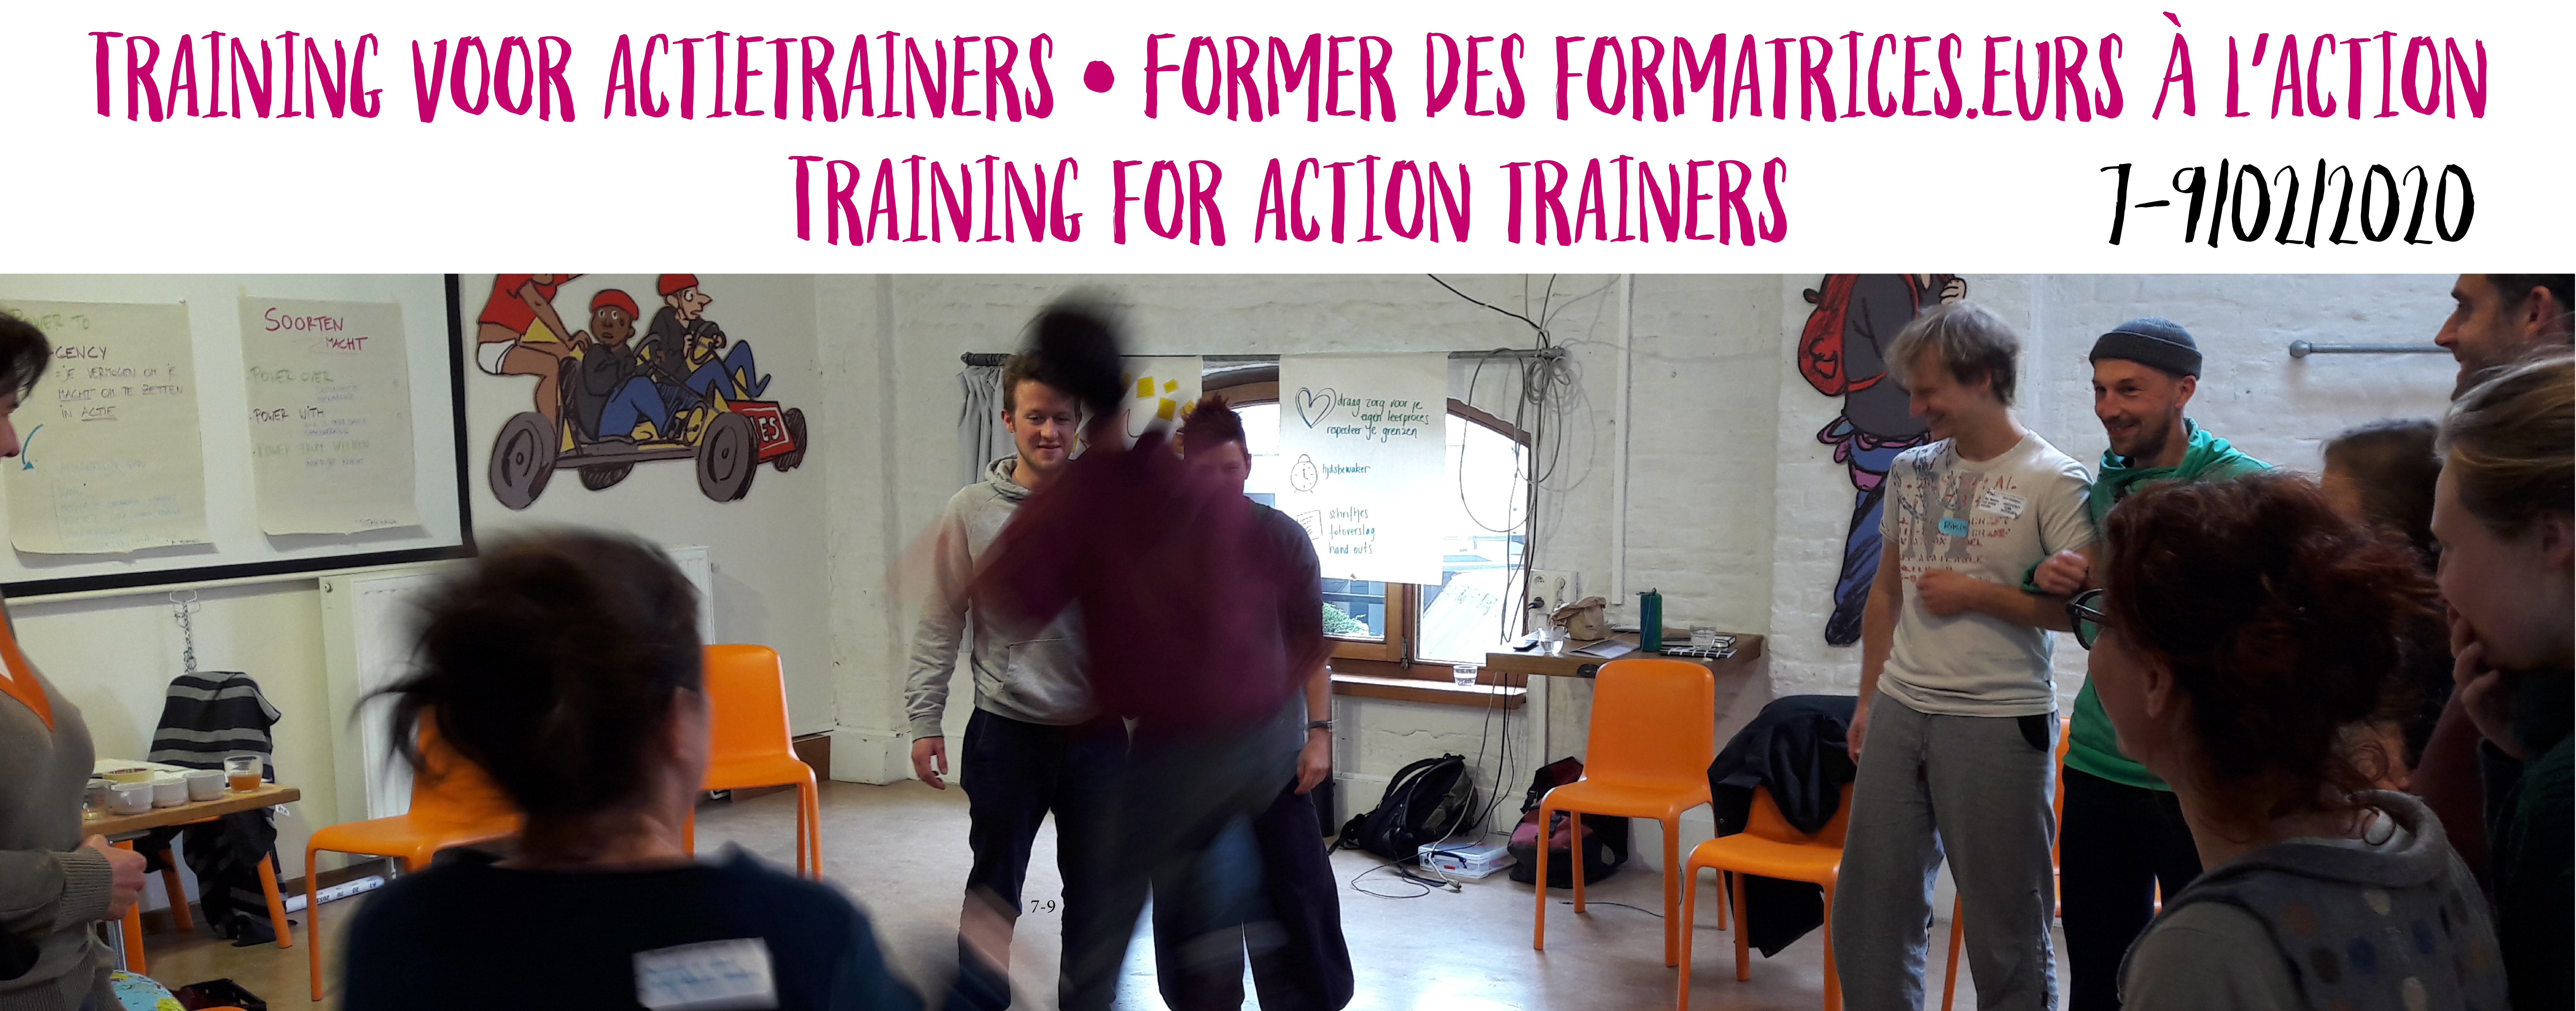 Visual training voor actietrainers